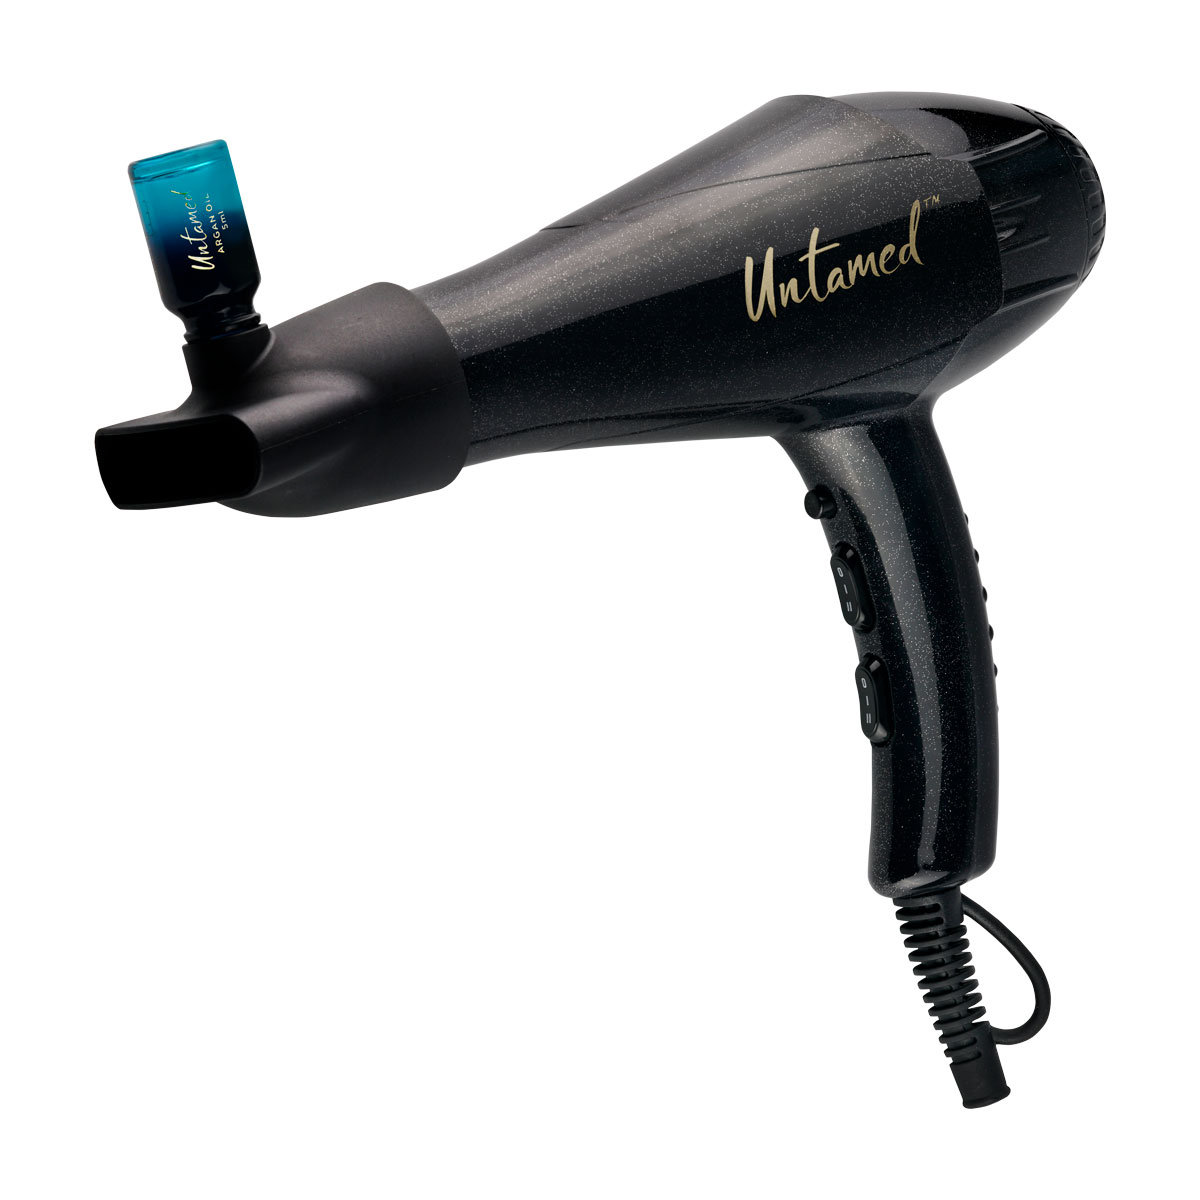 Untamed hairdryer